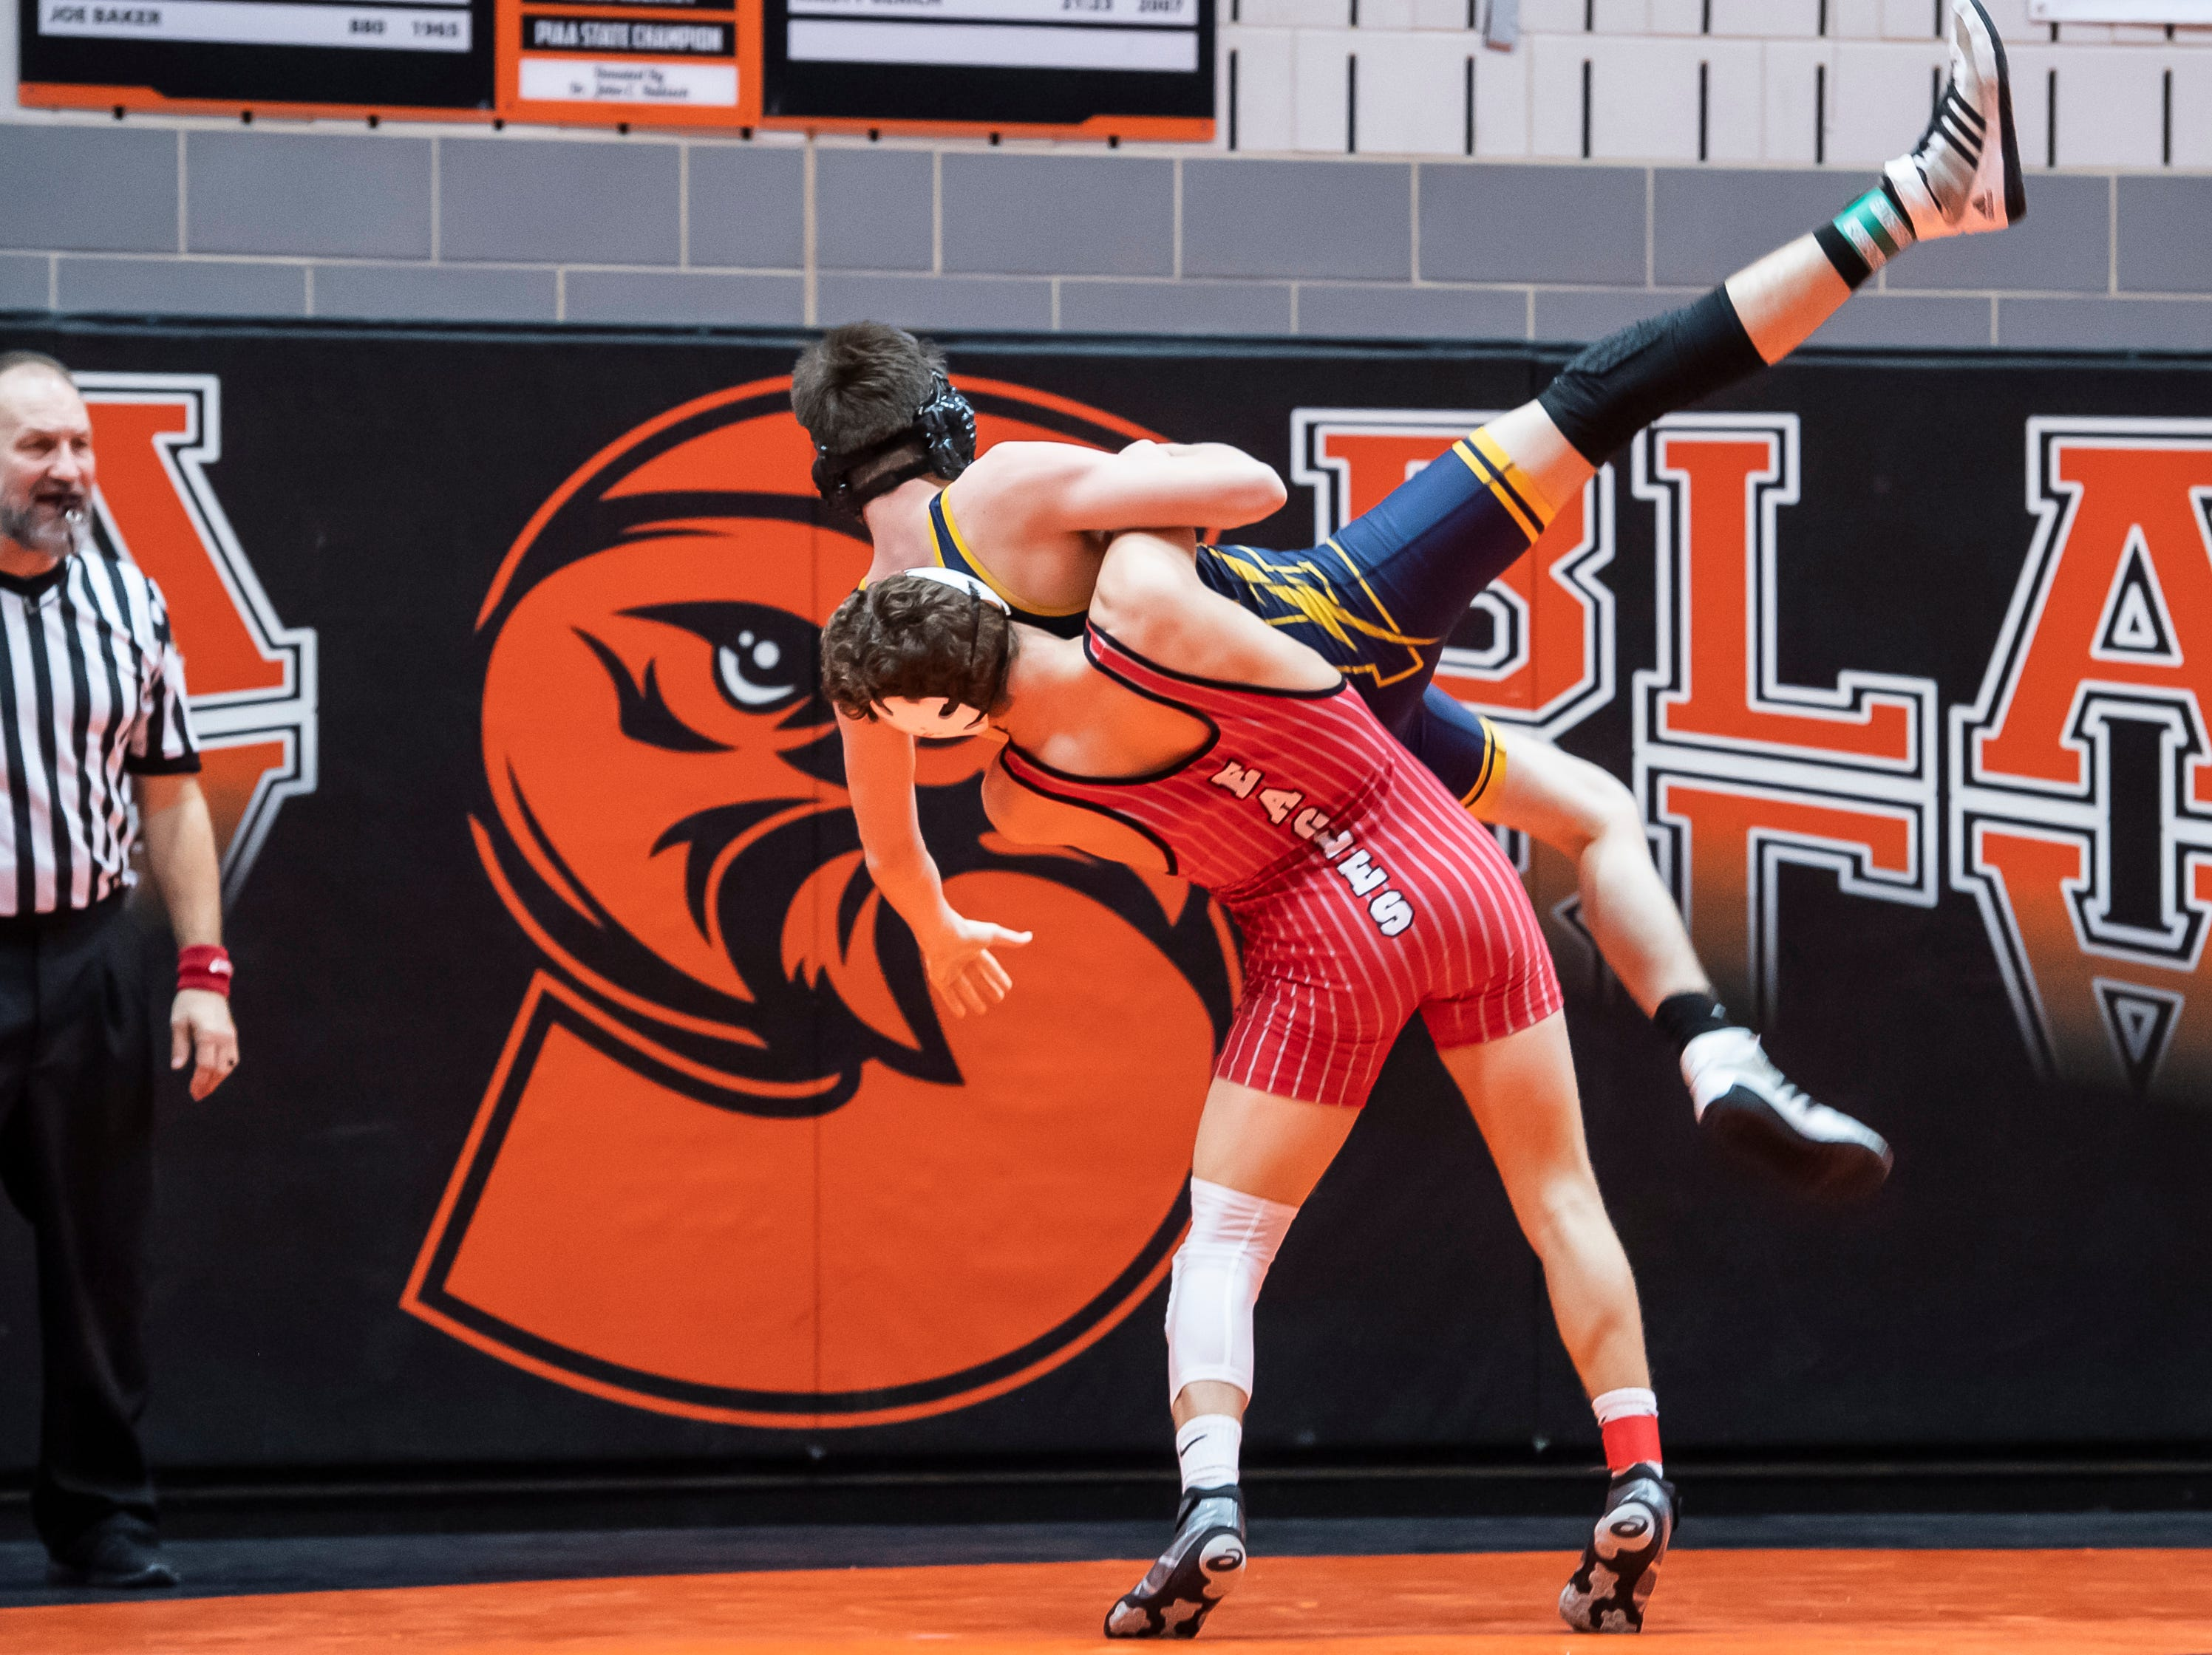 Bermudian Springs' Trenton Harder takes down Littlestown's Ashton Hensley during a 152-pound bout during the first day of the District 3 Class 2A Section I tournament at Susquenita High School Friday, February 15, 2019. Harder won by fall.